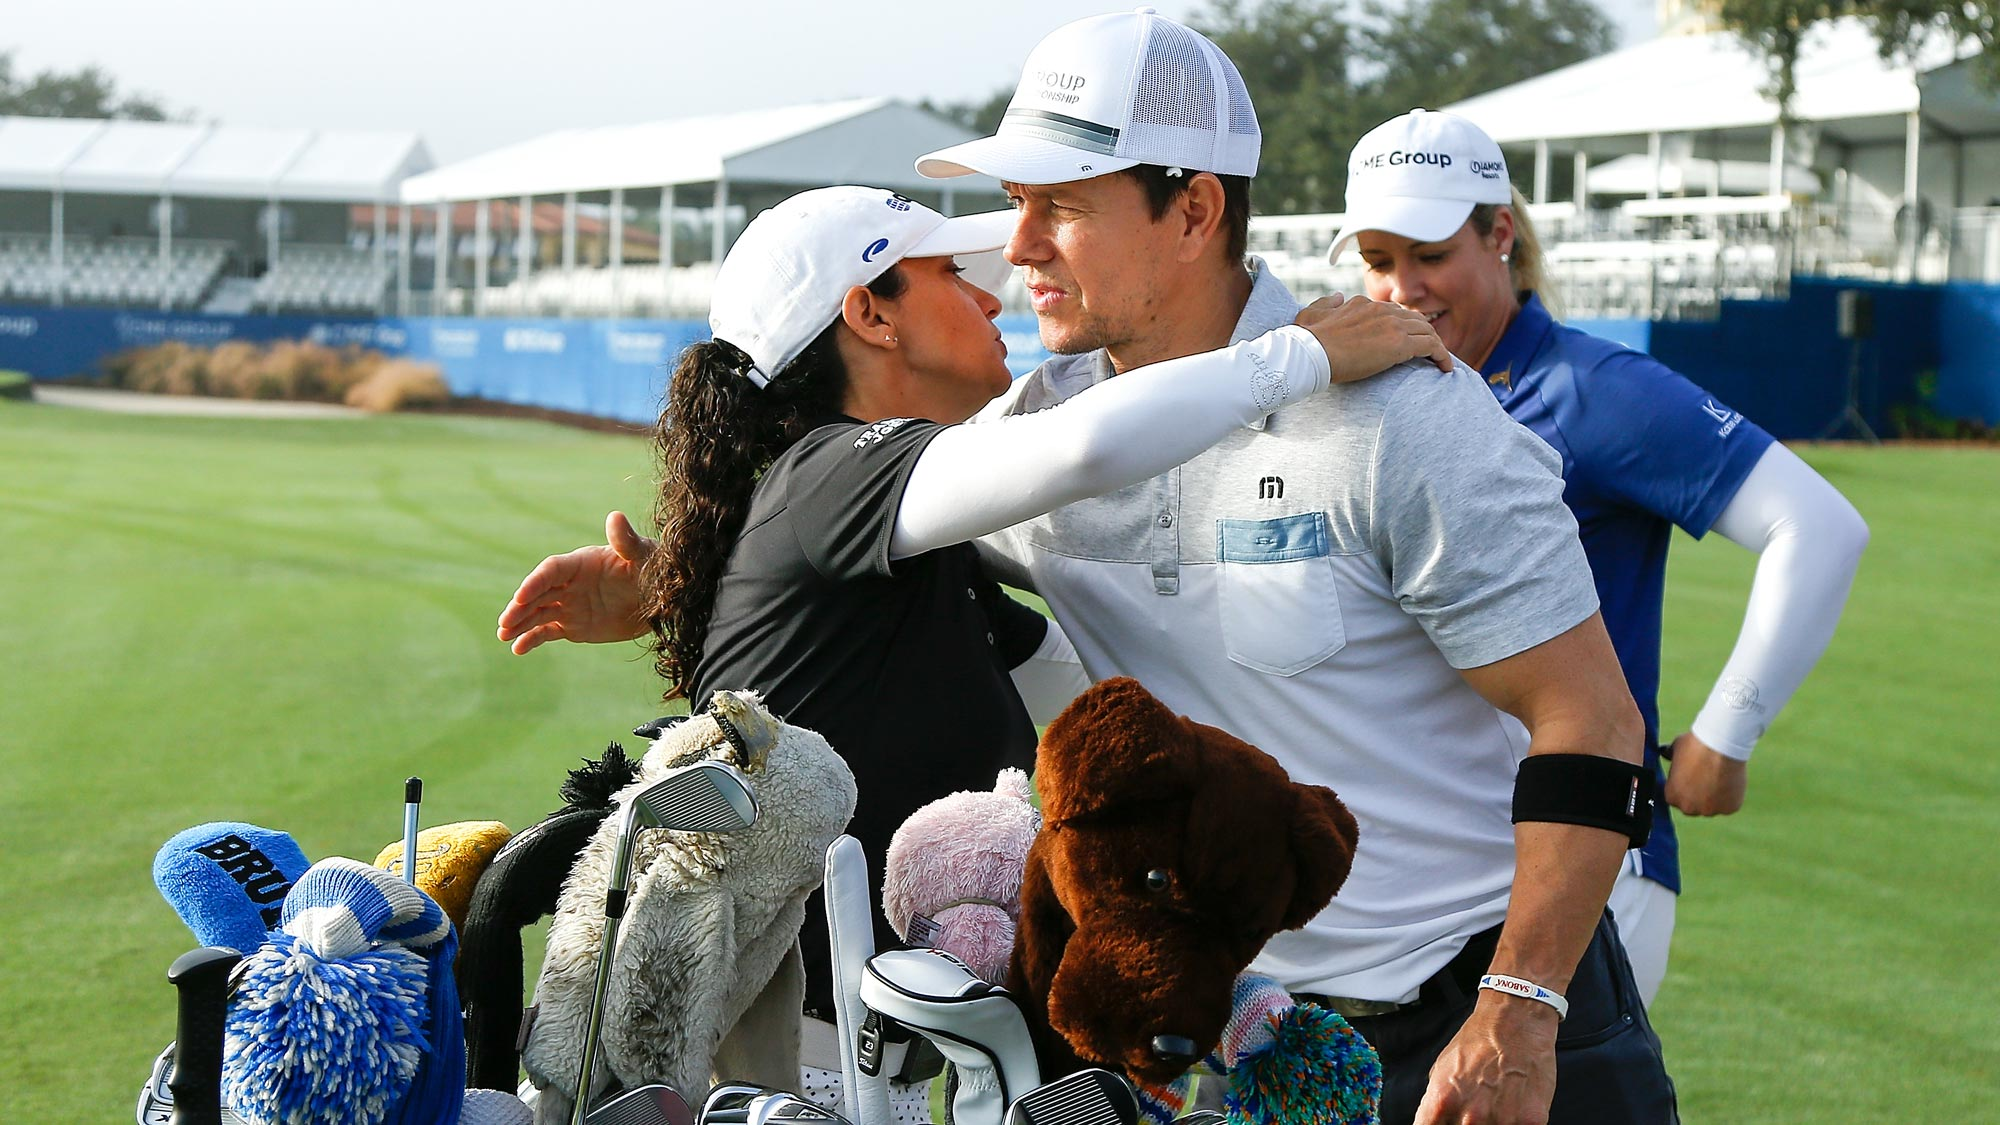 Actor Mark Wahlberg greets LPGA golfer Mo Martin prior to the CME Group charity event to benefit St. Jude Children's Research Hospital prior to the LPGA CME Group Tour Championship